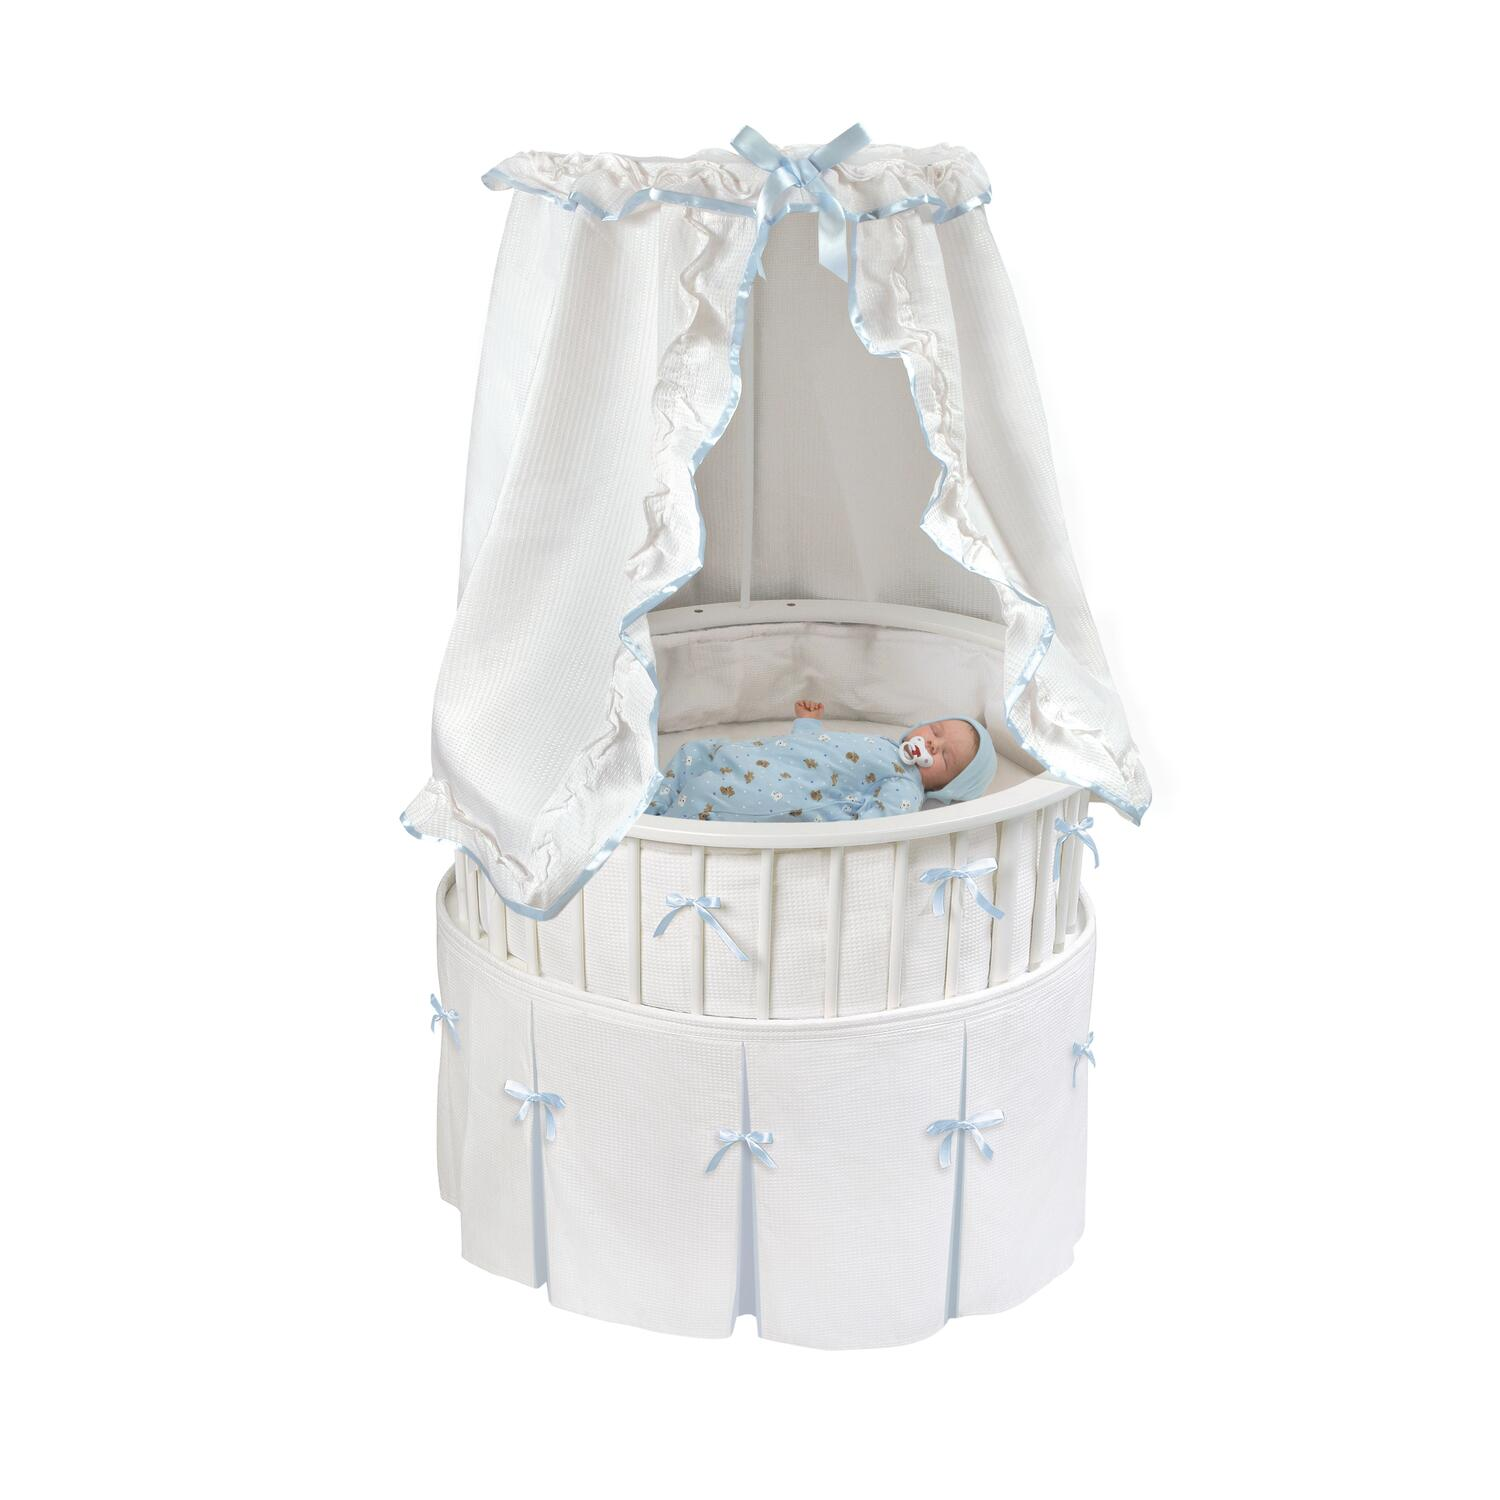 Elite Oval Baby Bassinet - From $157.89 to $159.08 ...